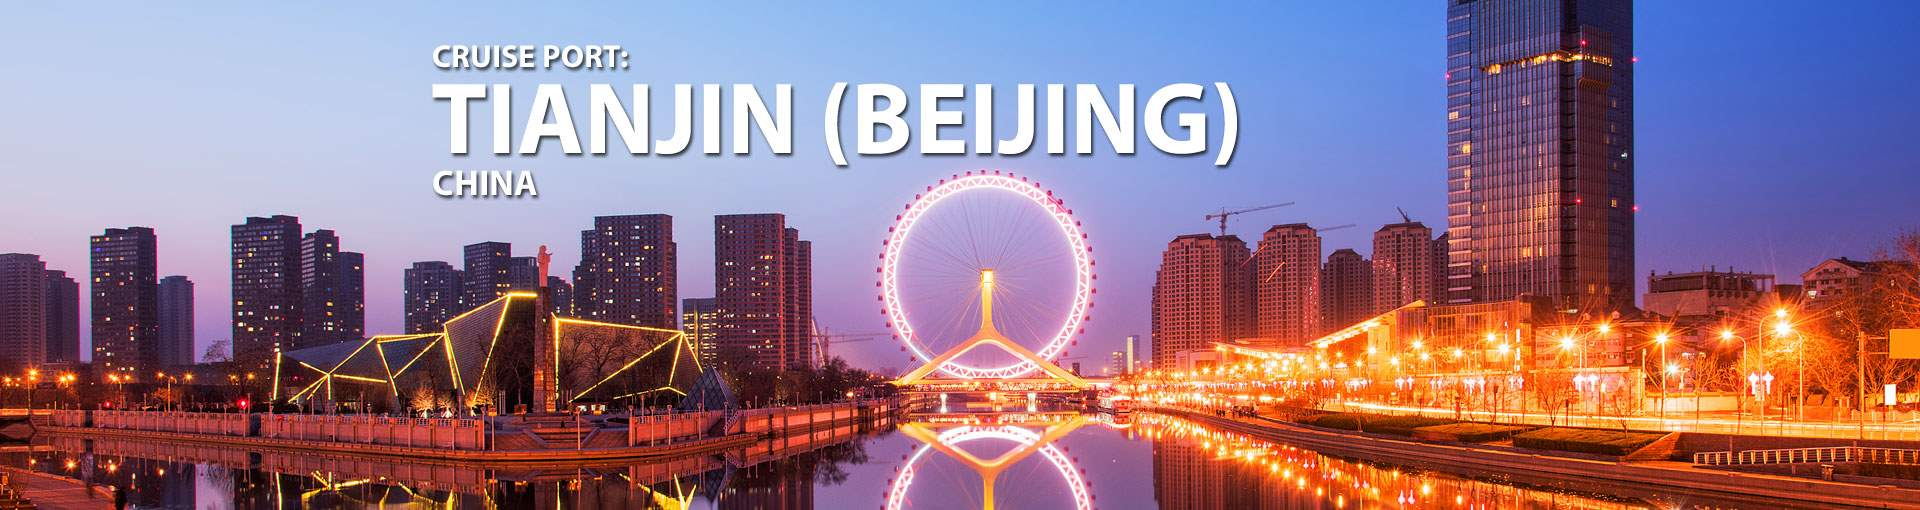 Cruises to Tianjin (Beijing), China